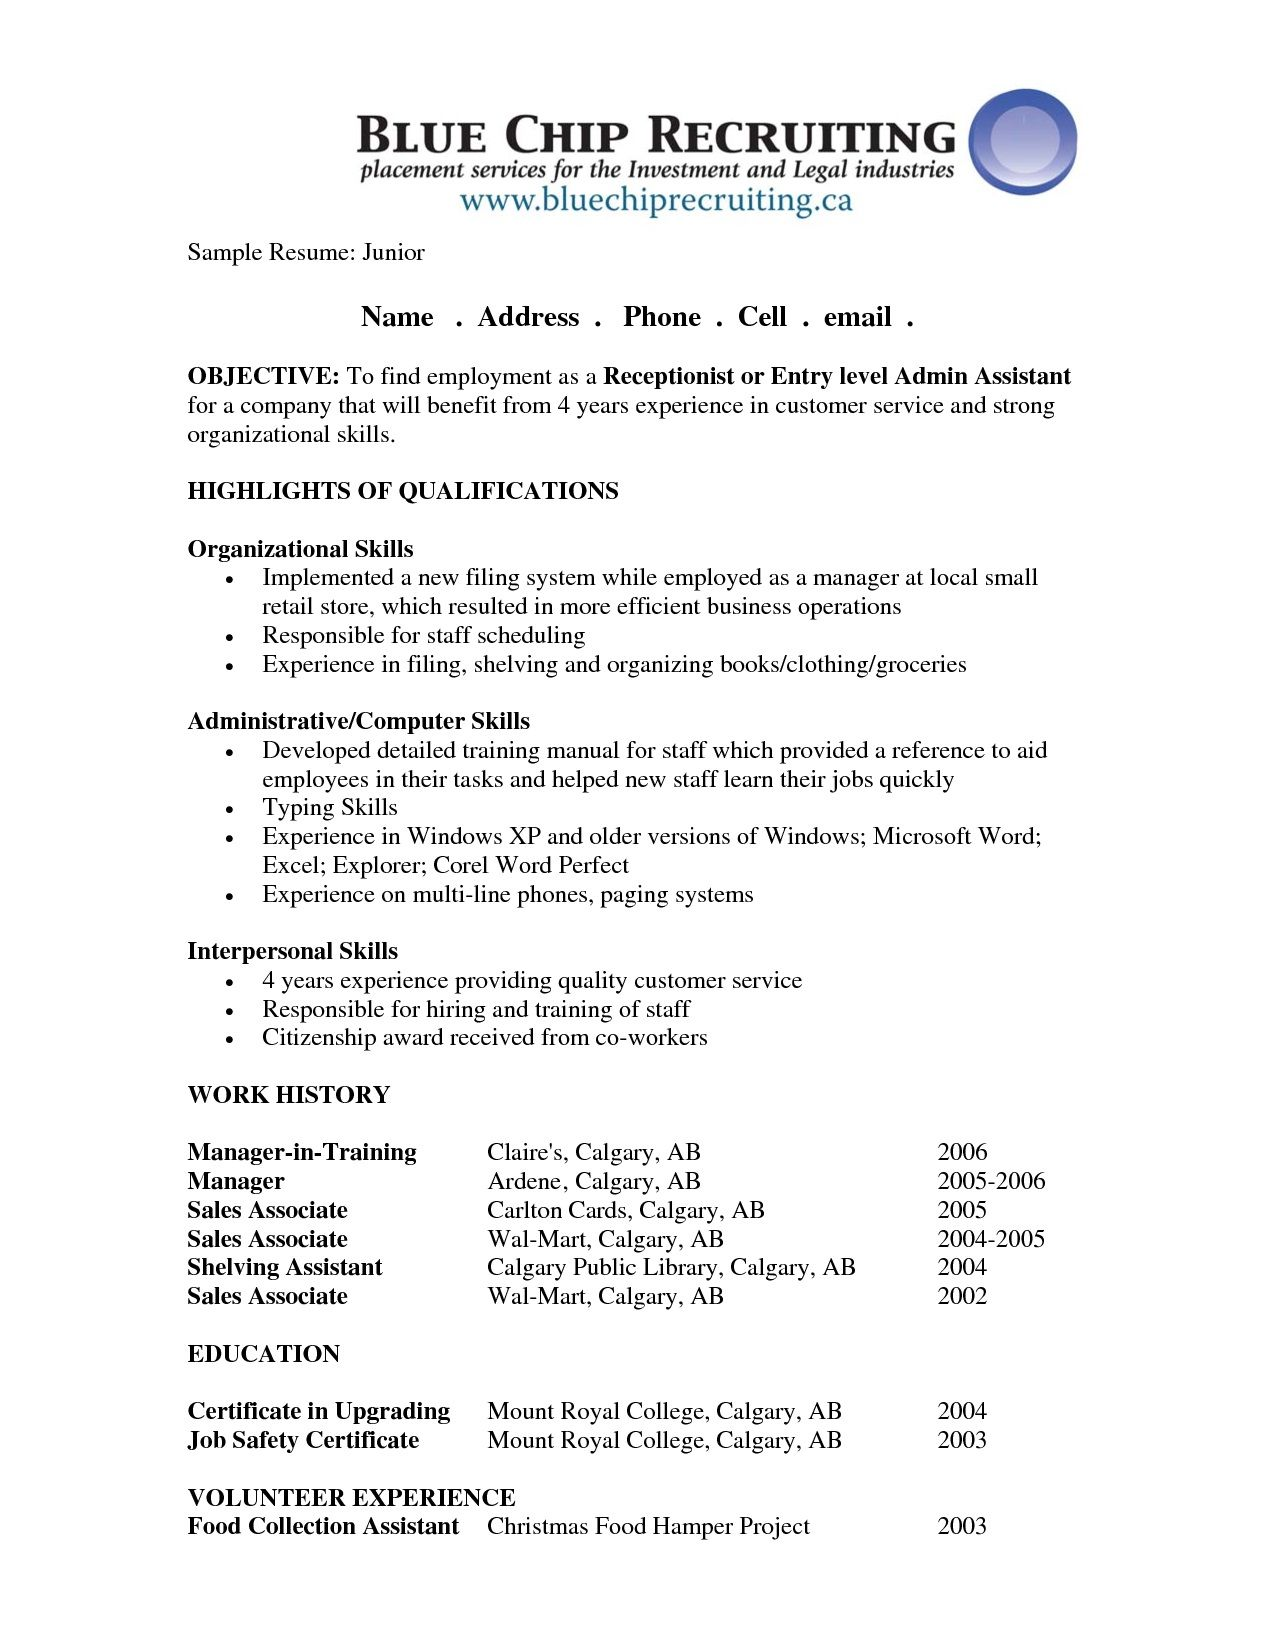 receptionist resume objective sample are really great examples of resume and curriculum vitae for those who are looking for guidance - Samples Of Objective For Resume